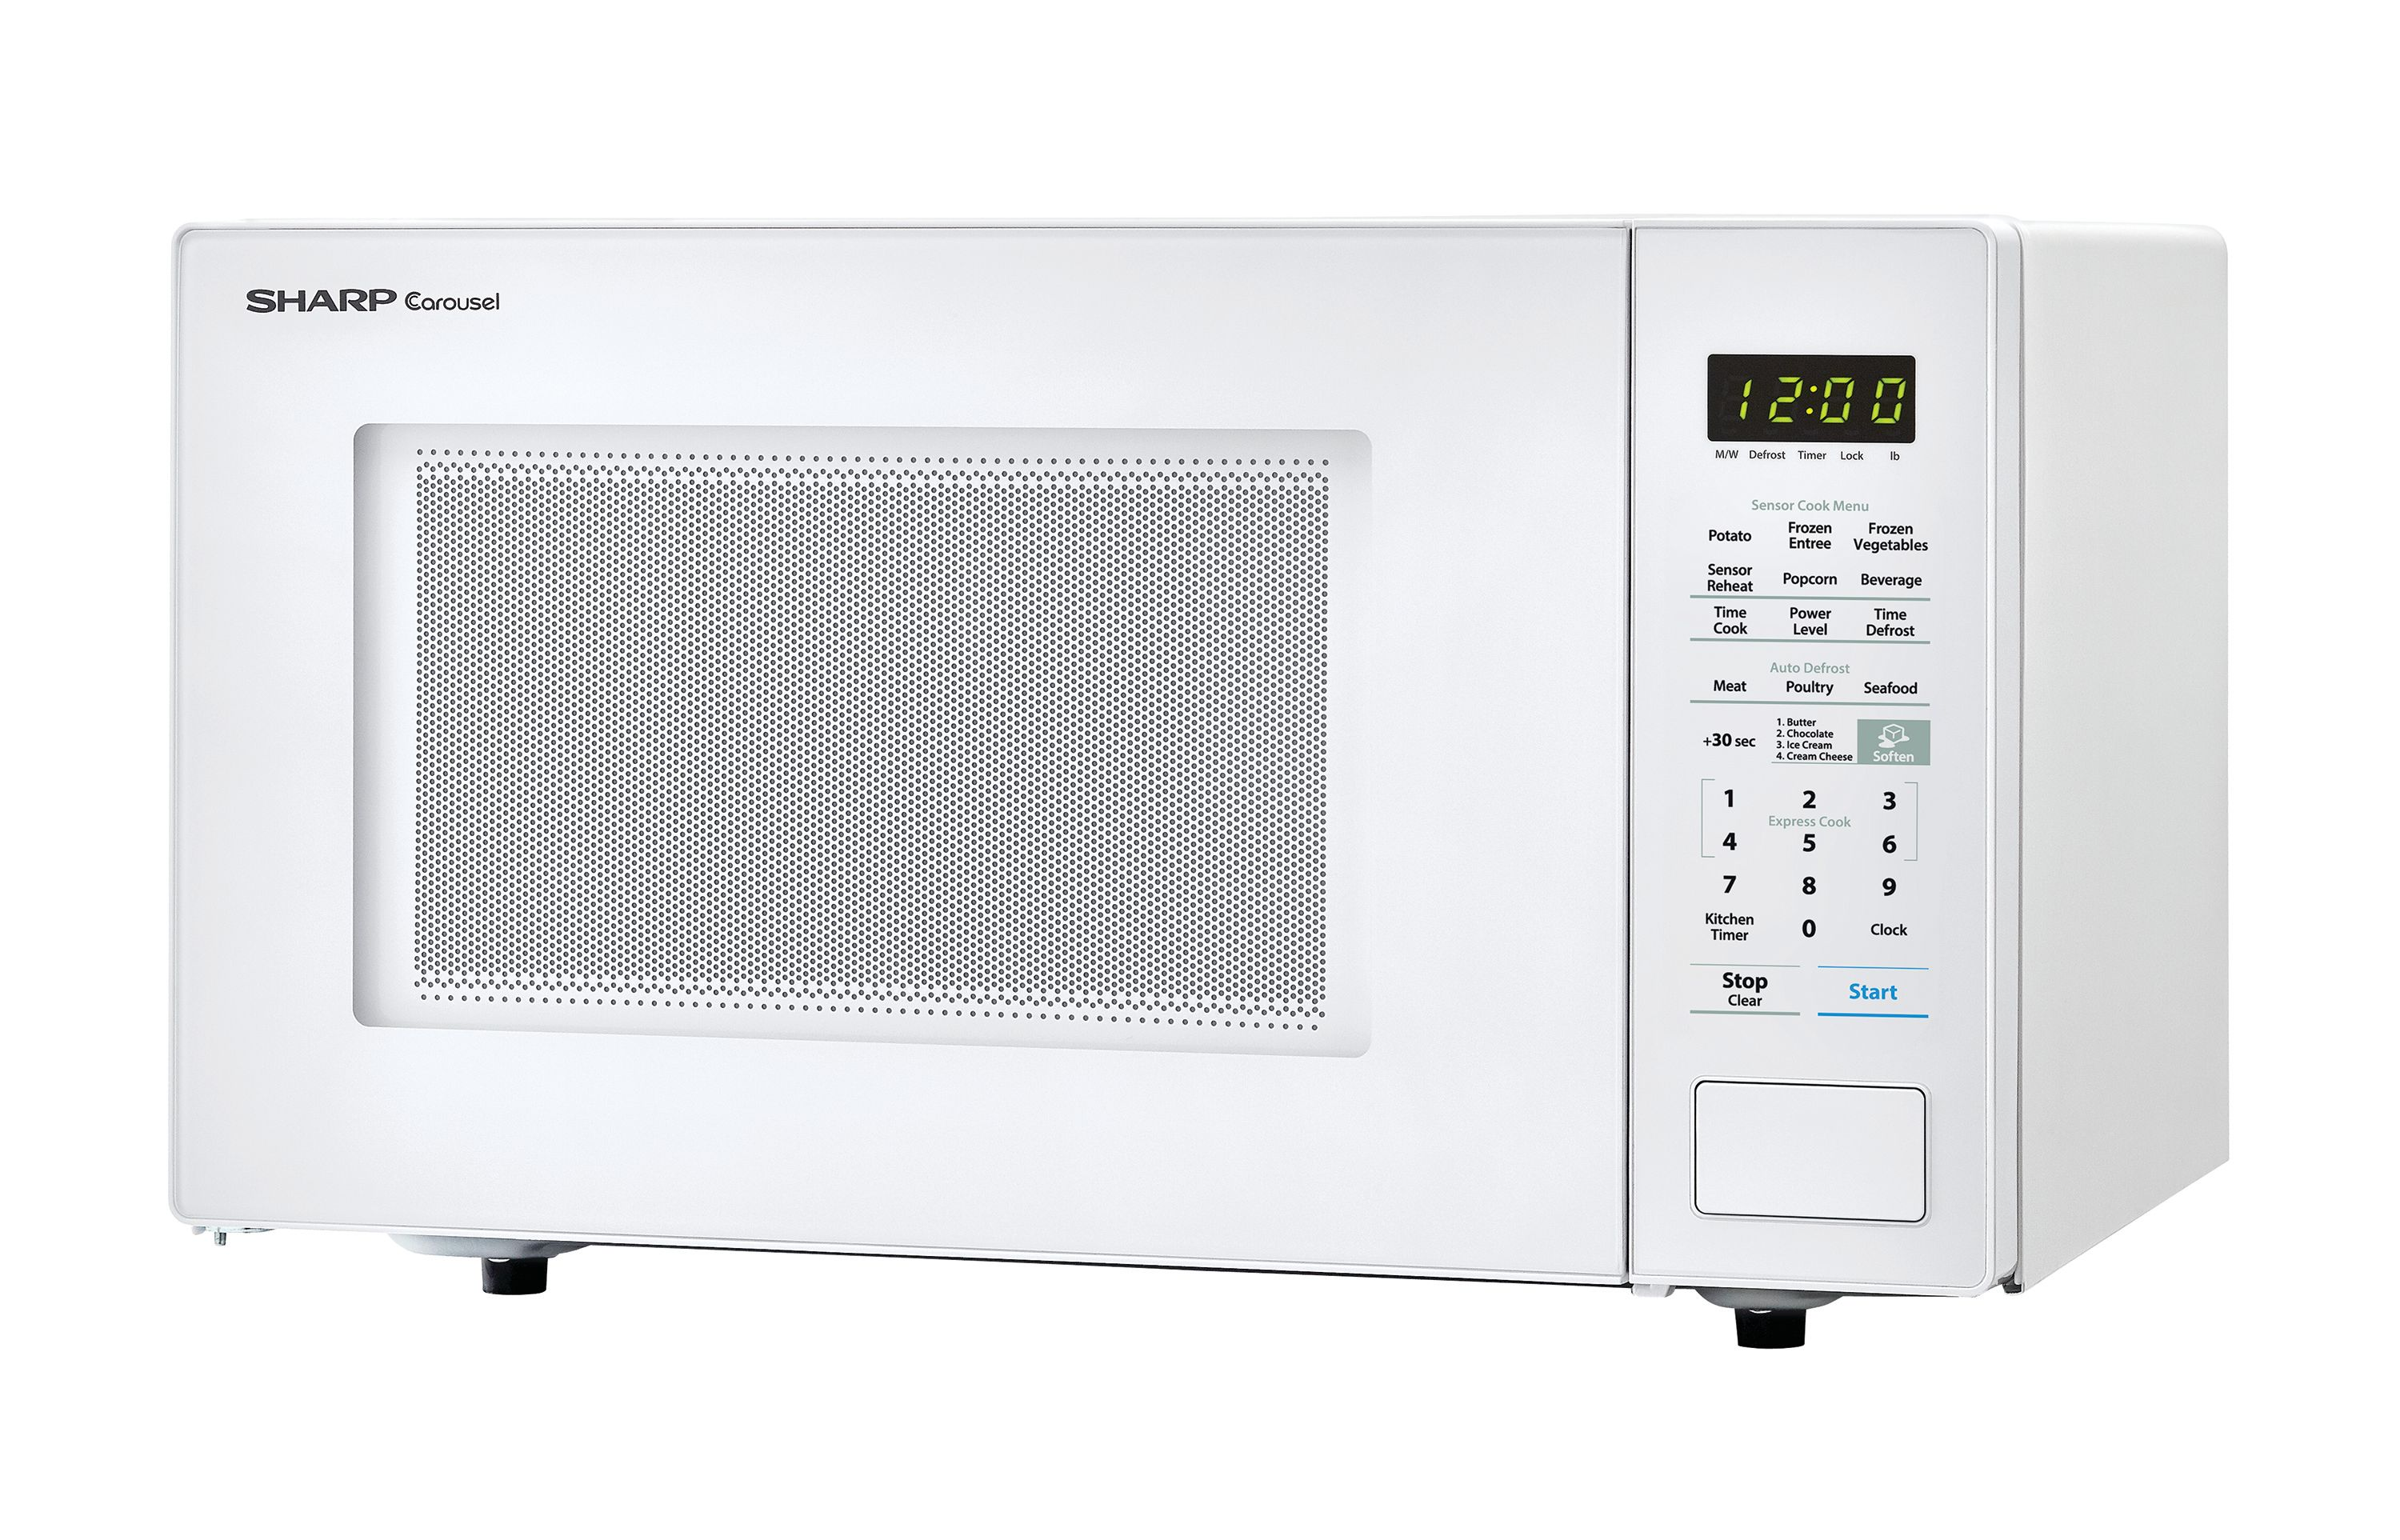 Sharp Zsmc1441cw 1 4 Cu Ft Microwave